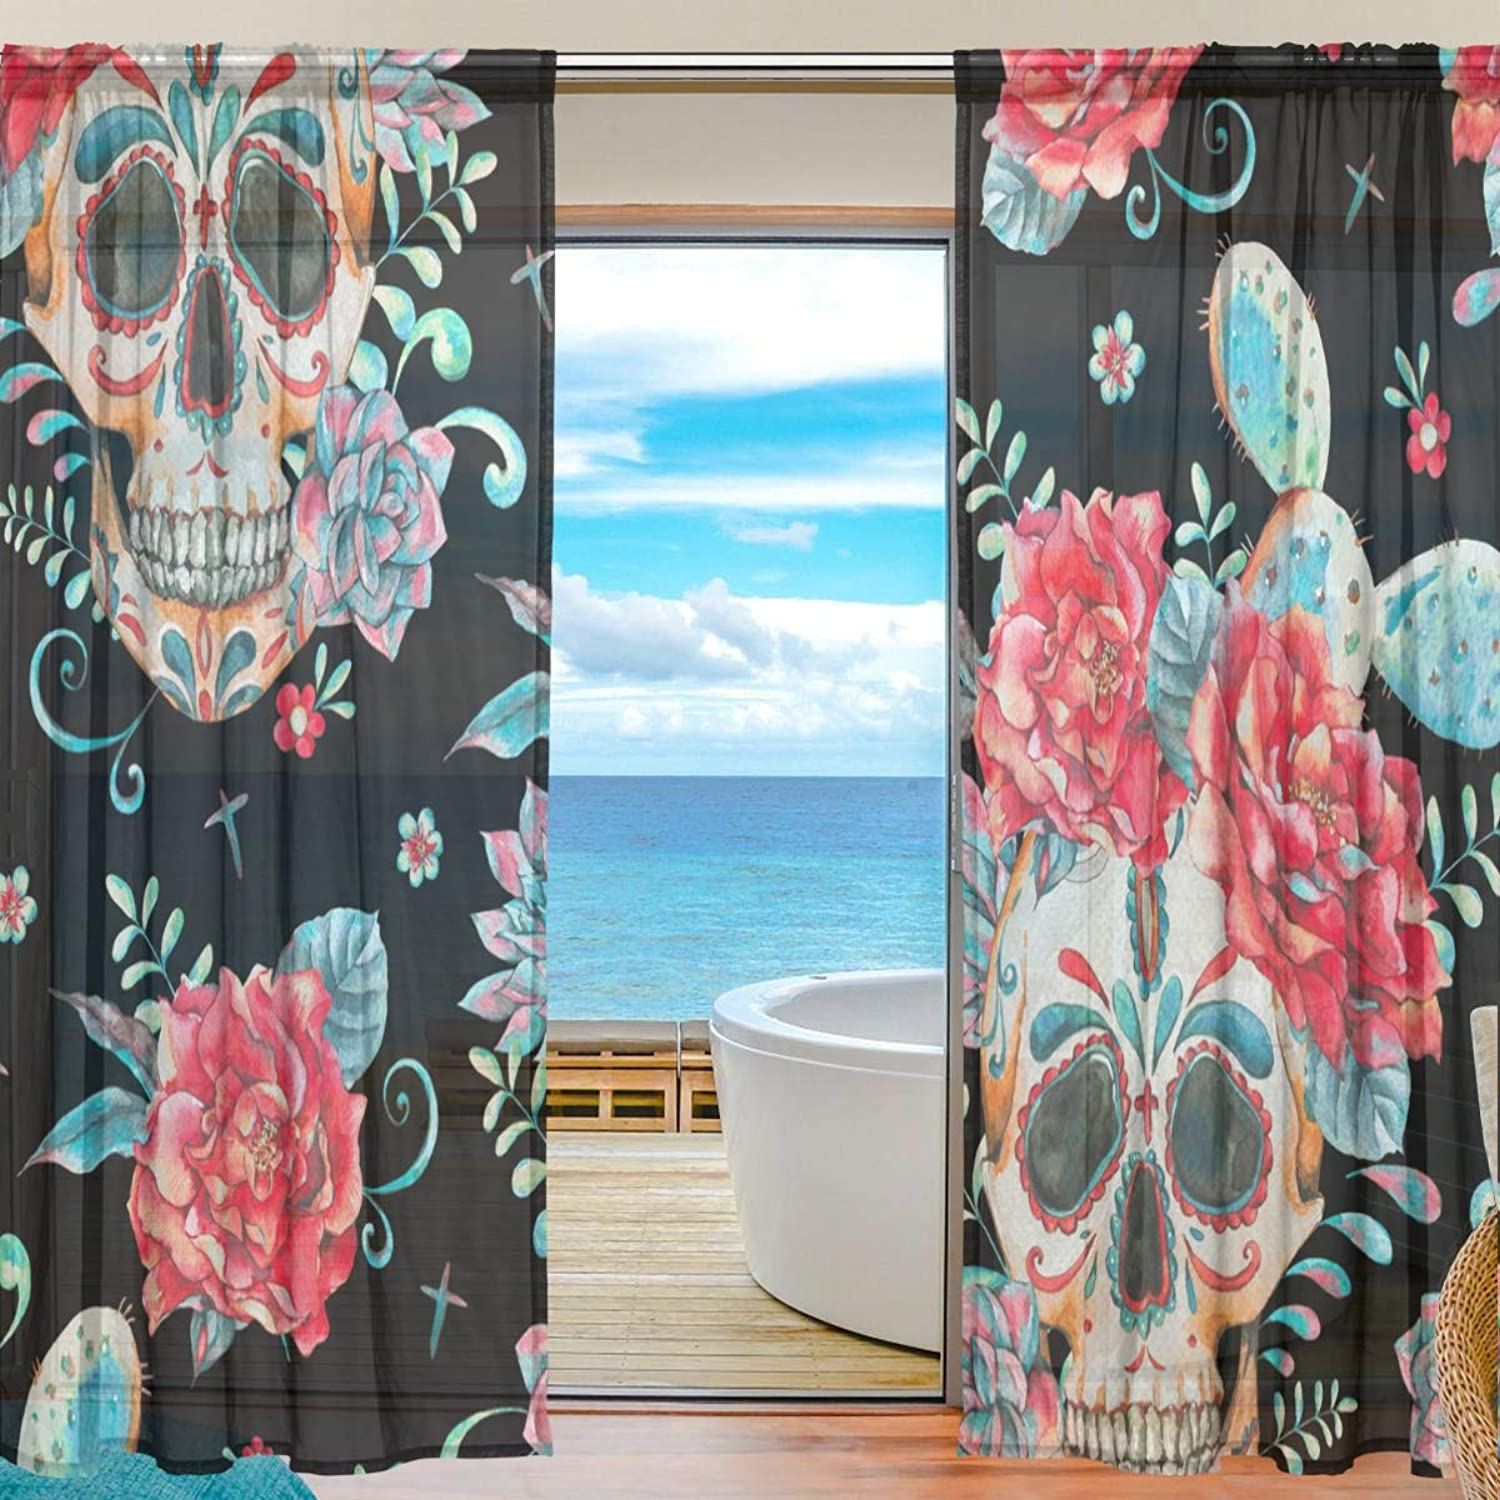 Skull pink 2 Pieces Curtain Panel 55 x 78 inches for Bedroom Living Room